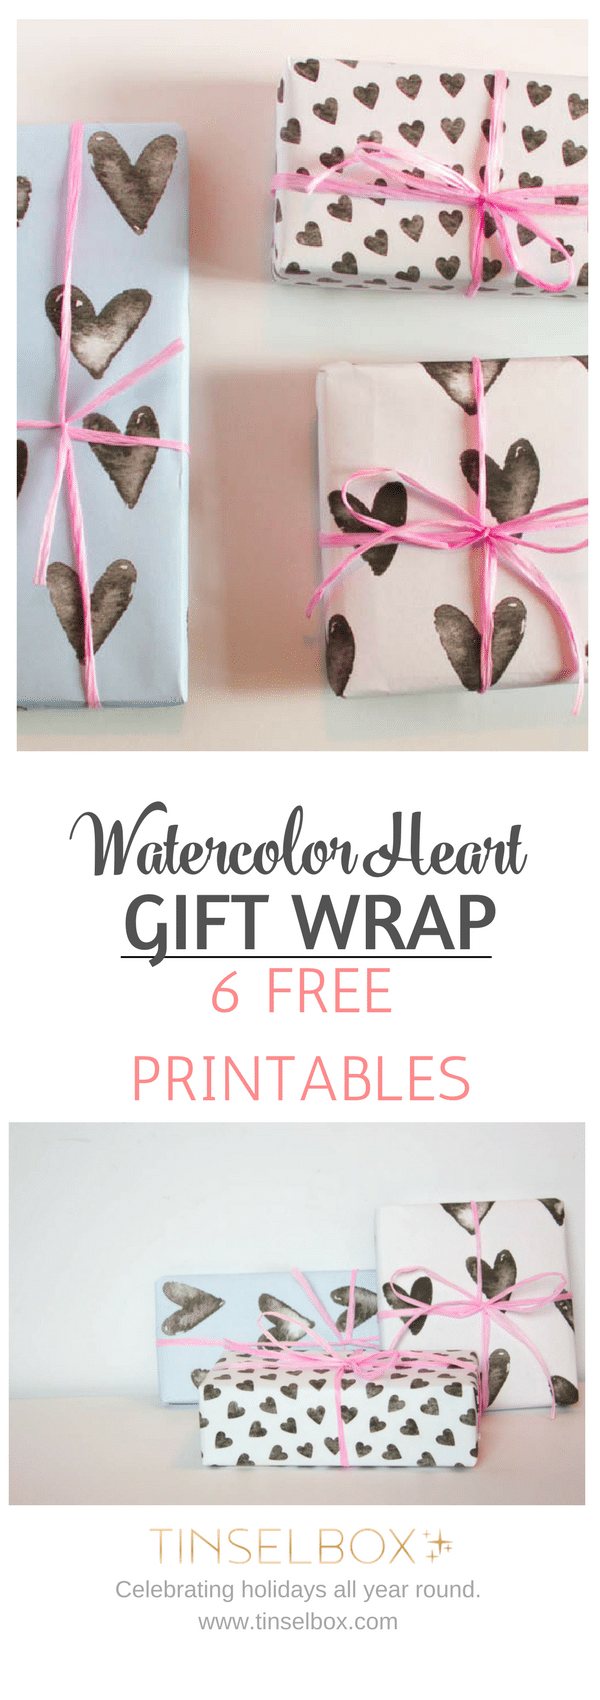 Watercolor free gift wrap printable in six heart designs